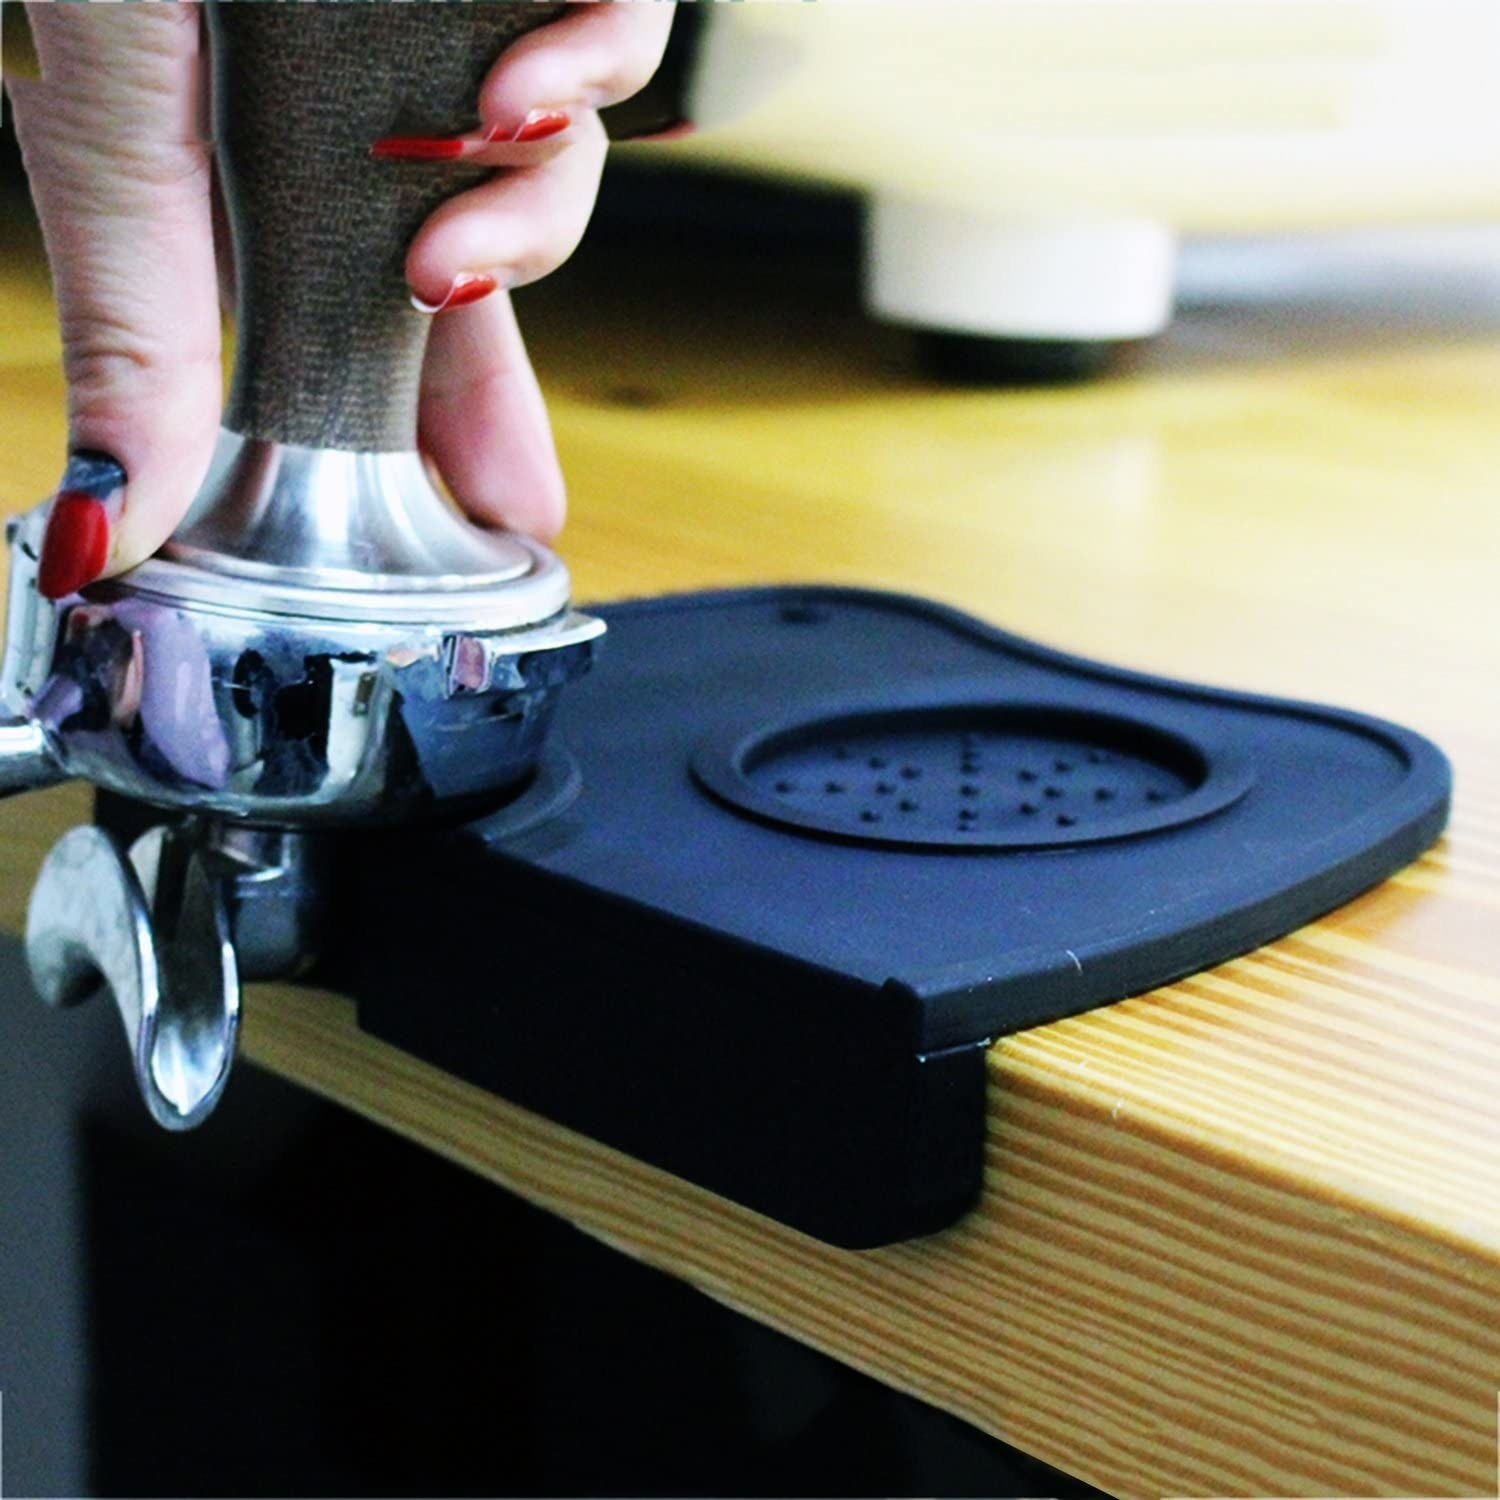 A person tamps an espresso container on the silicone mat